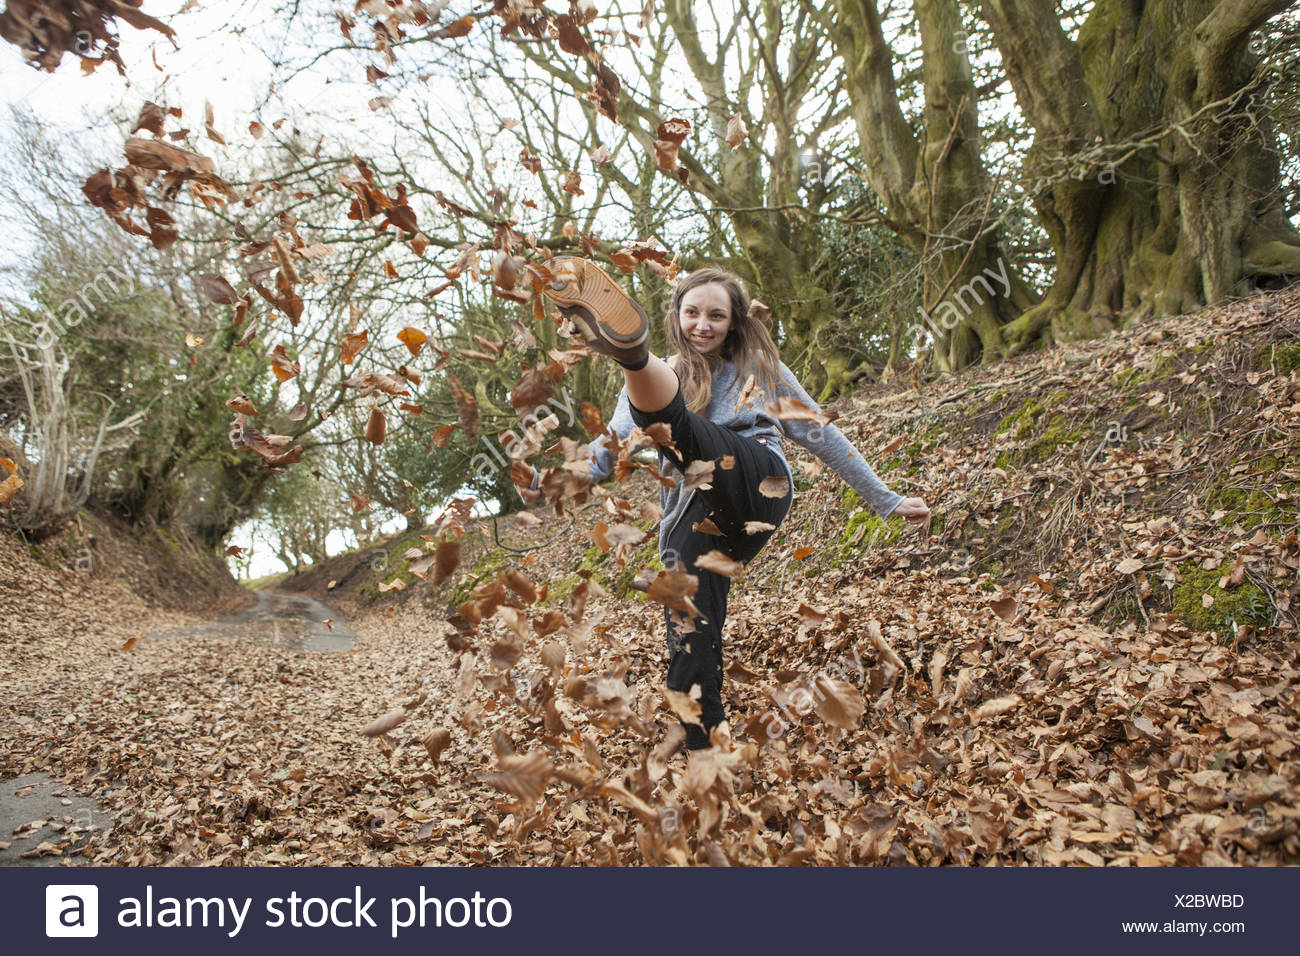 Young woman playing in fallen leaves, kicking them in the air. - Stock Image